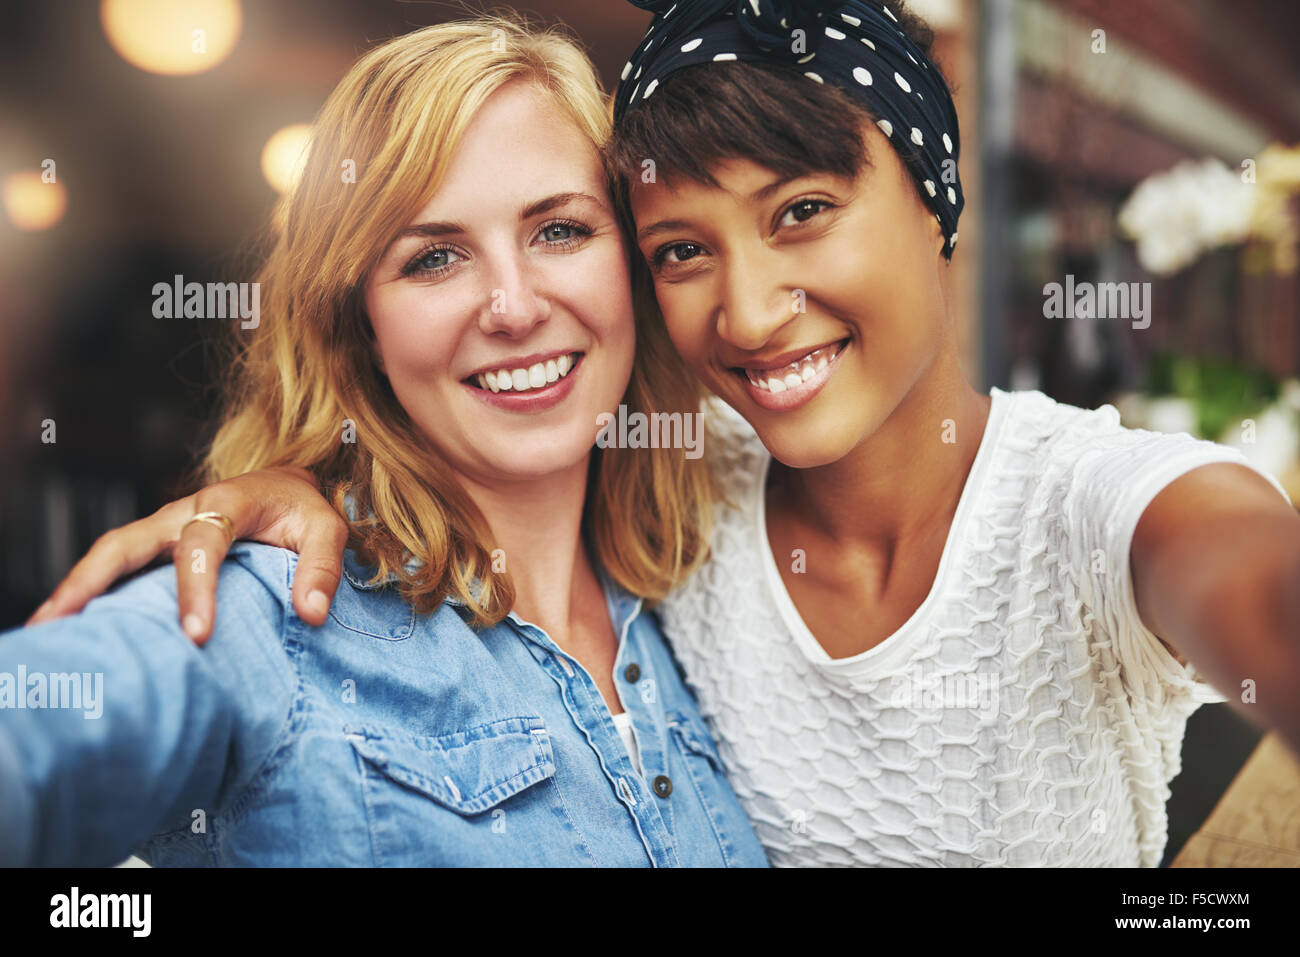 Two young women best friends sitting arm in arm with their faces close together smiling at the camera, multiethnic - Stock Image